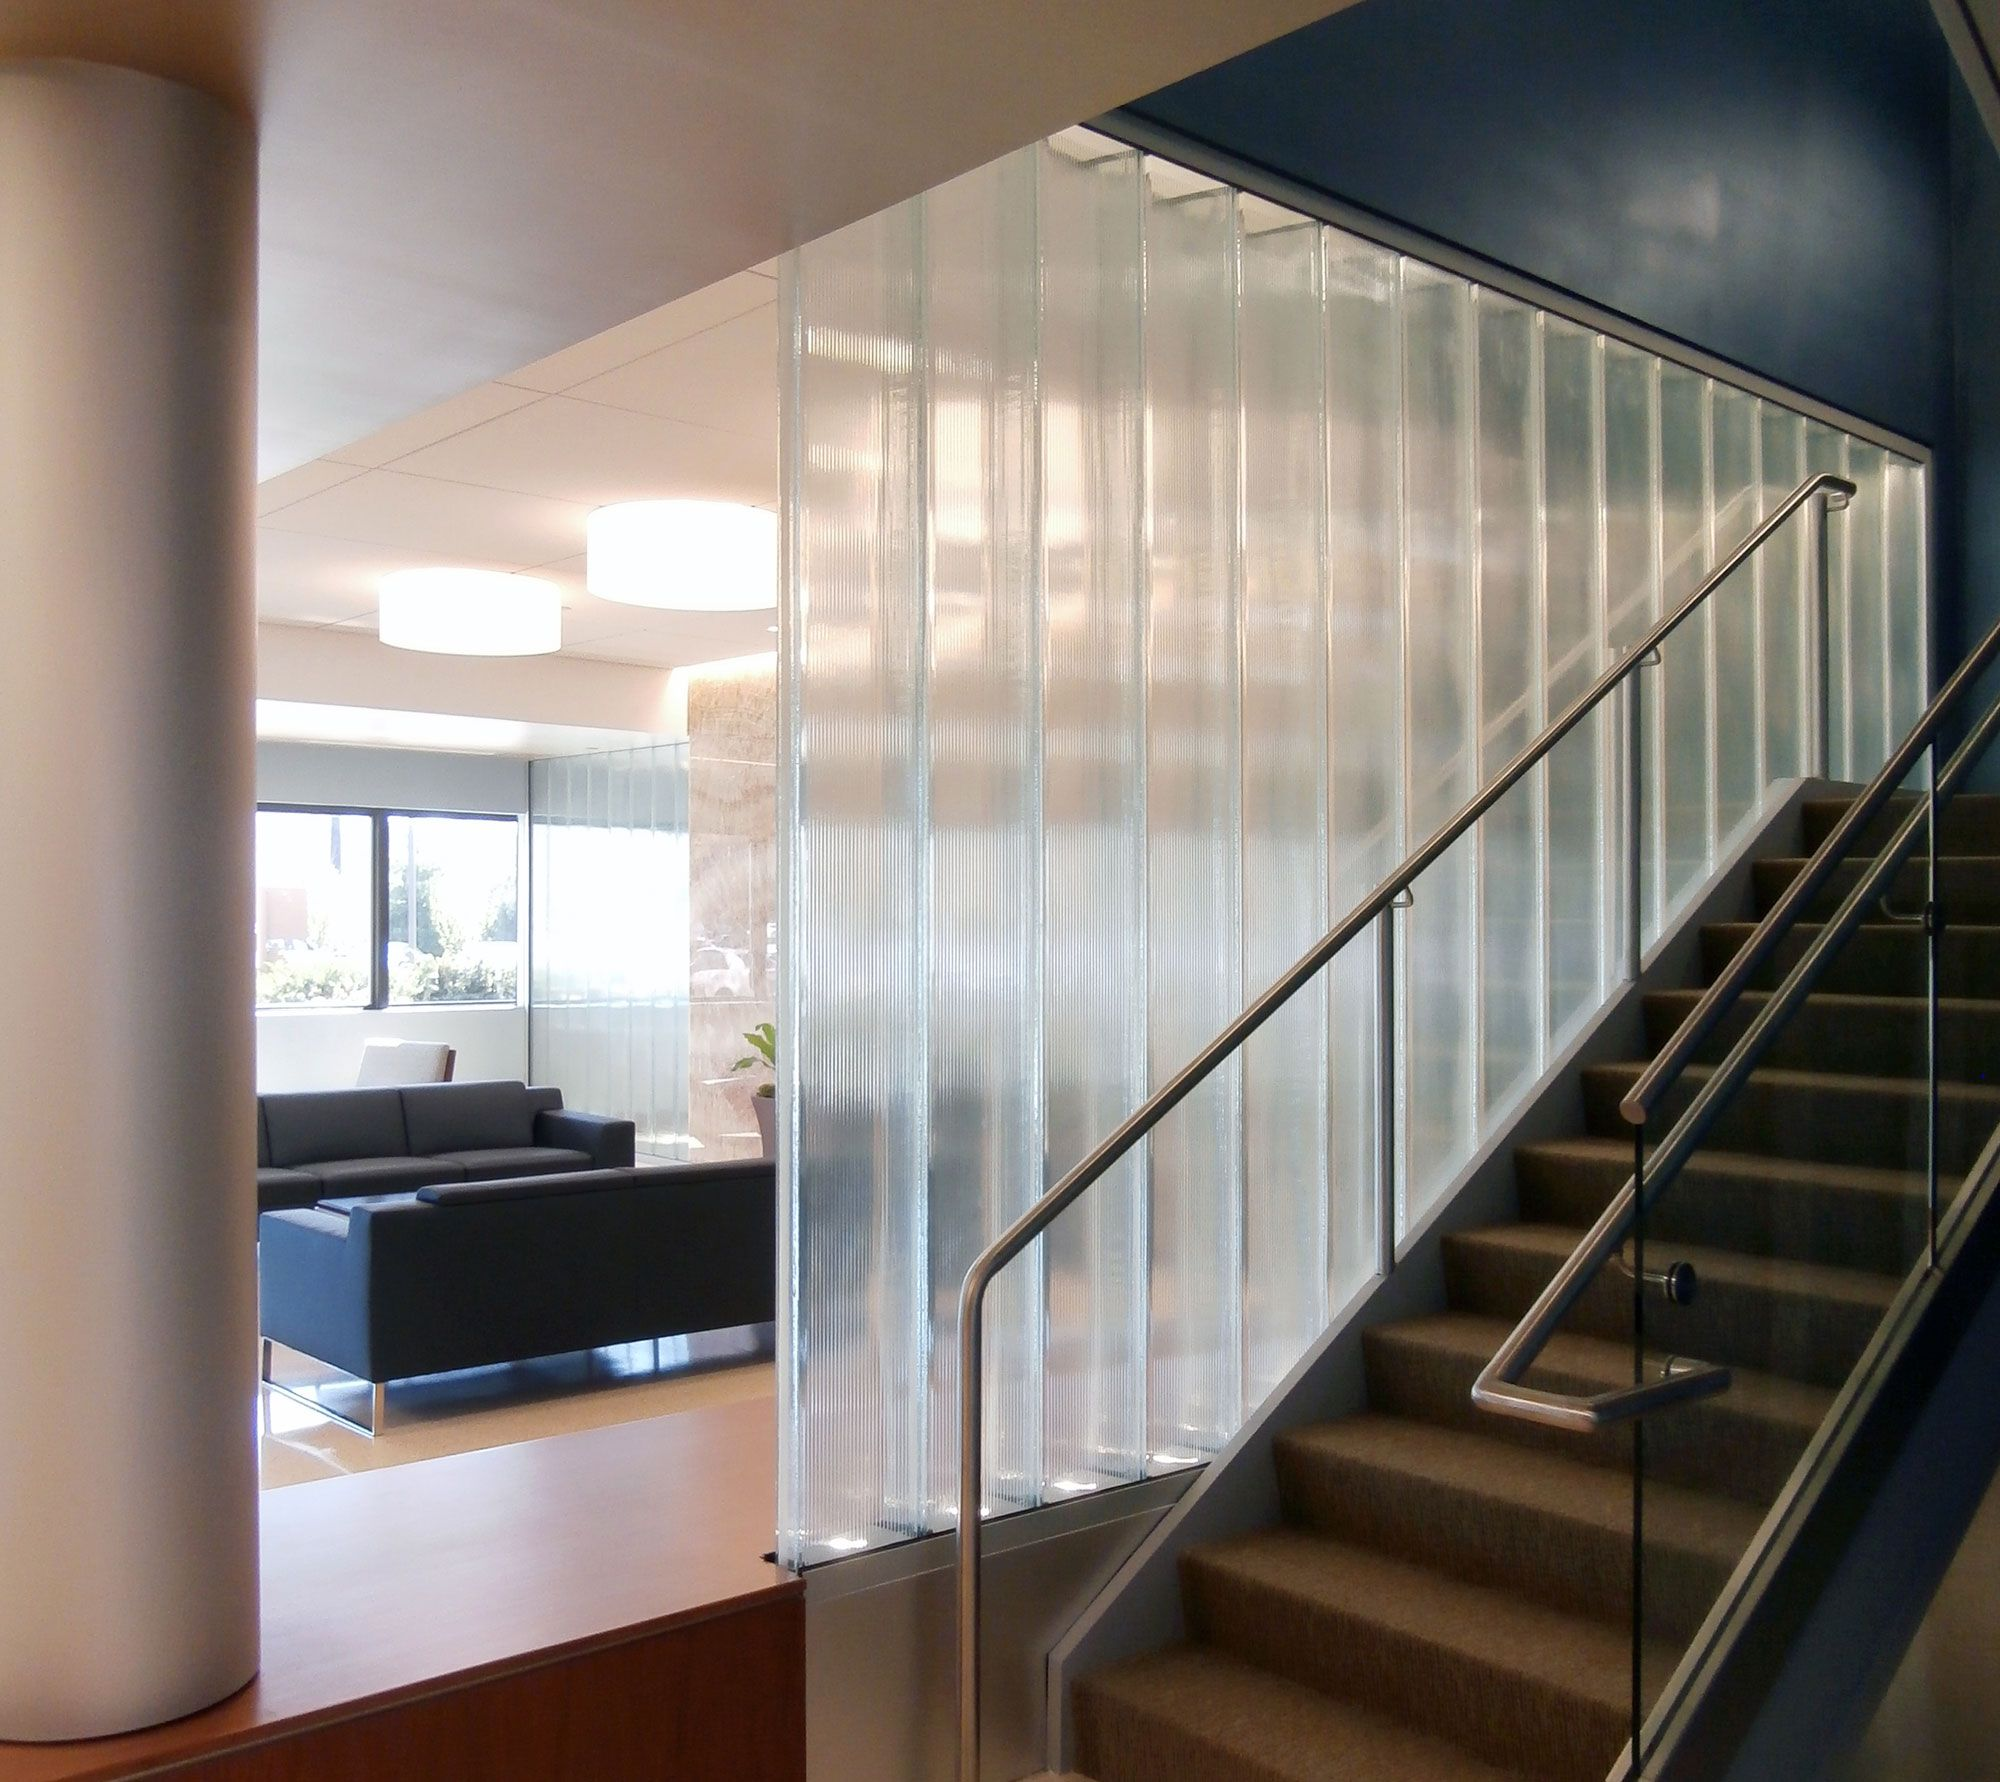 Walls Made Of Double Glazed Channel Glass From Bendheim Wall Systems Are Featured In The Main Lobby Of This Comme Wall Systems Channel Glass Glass Wall Systems